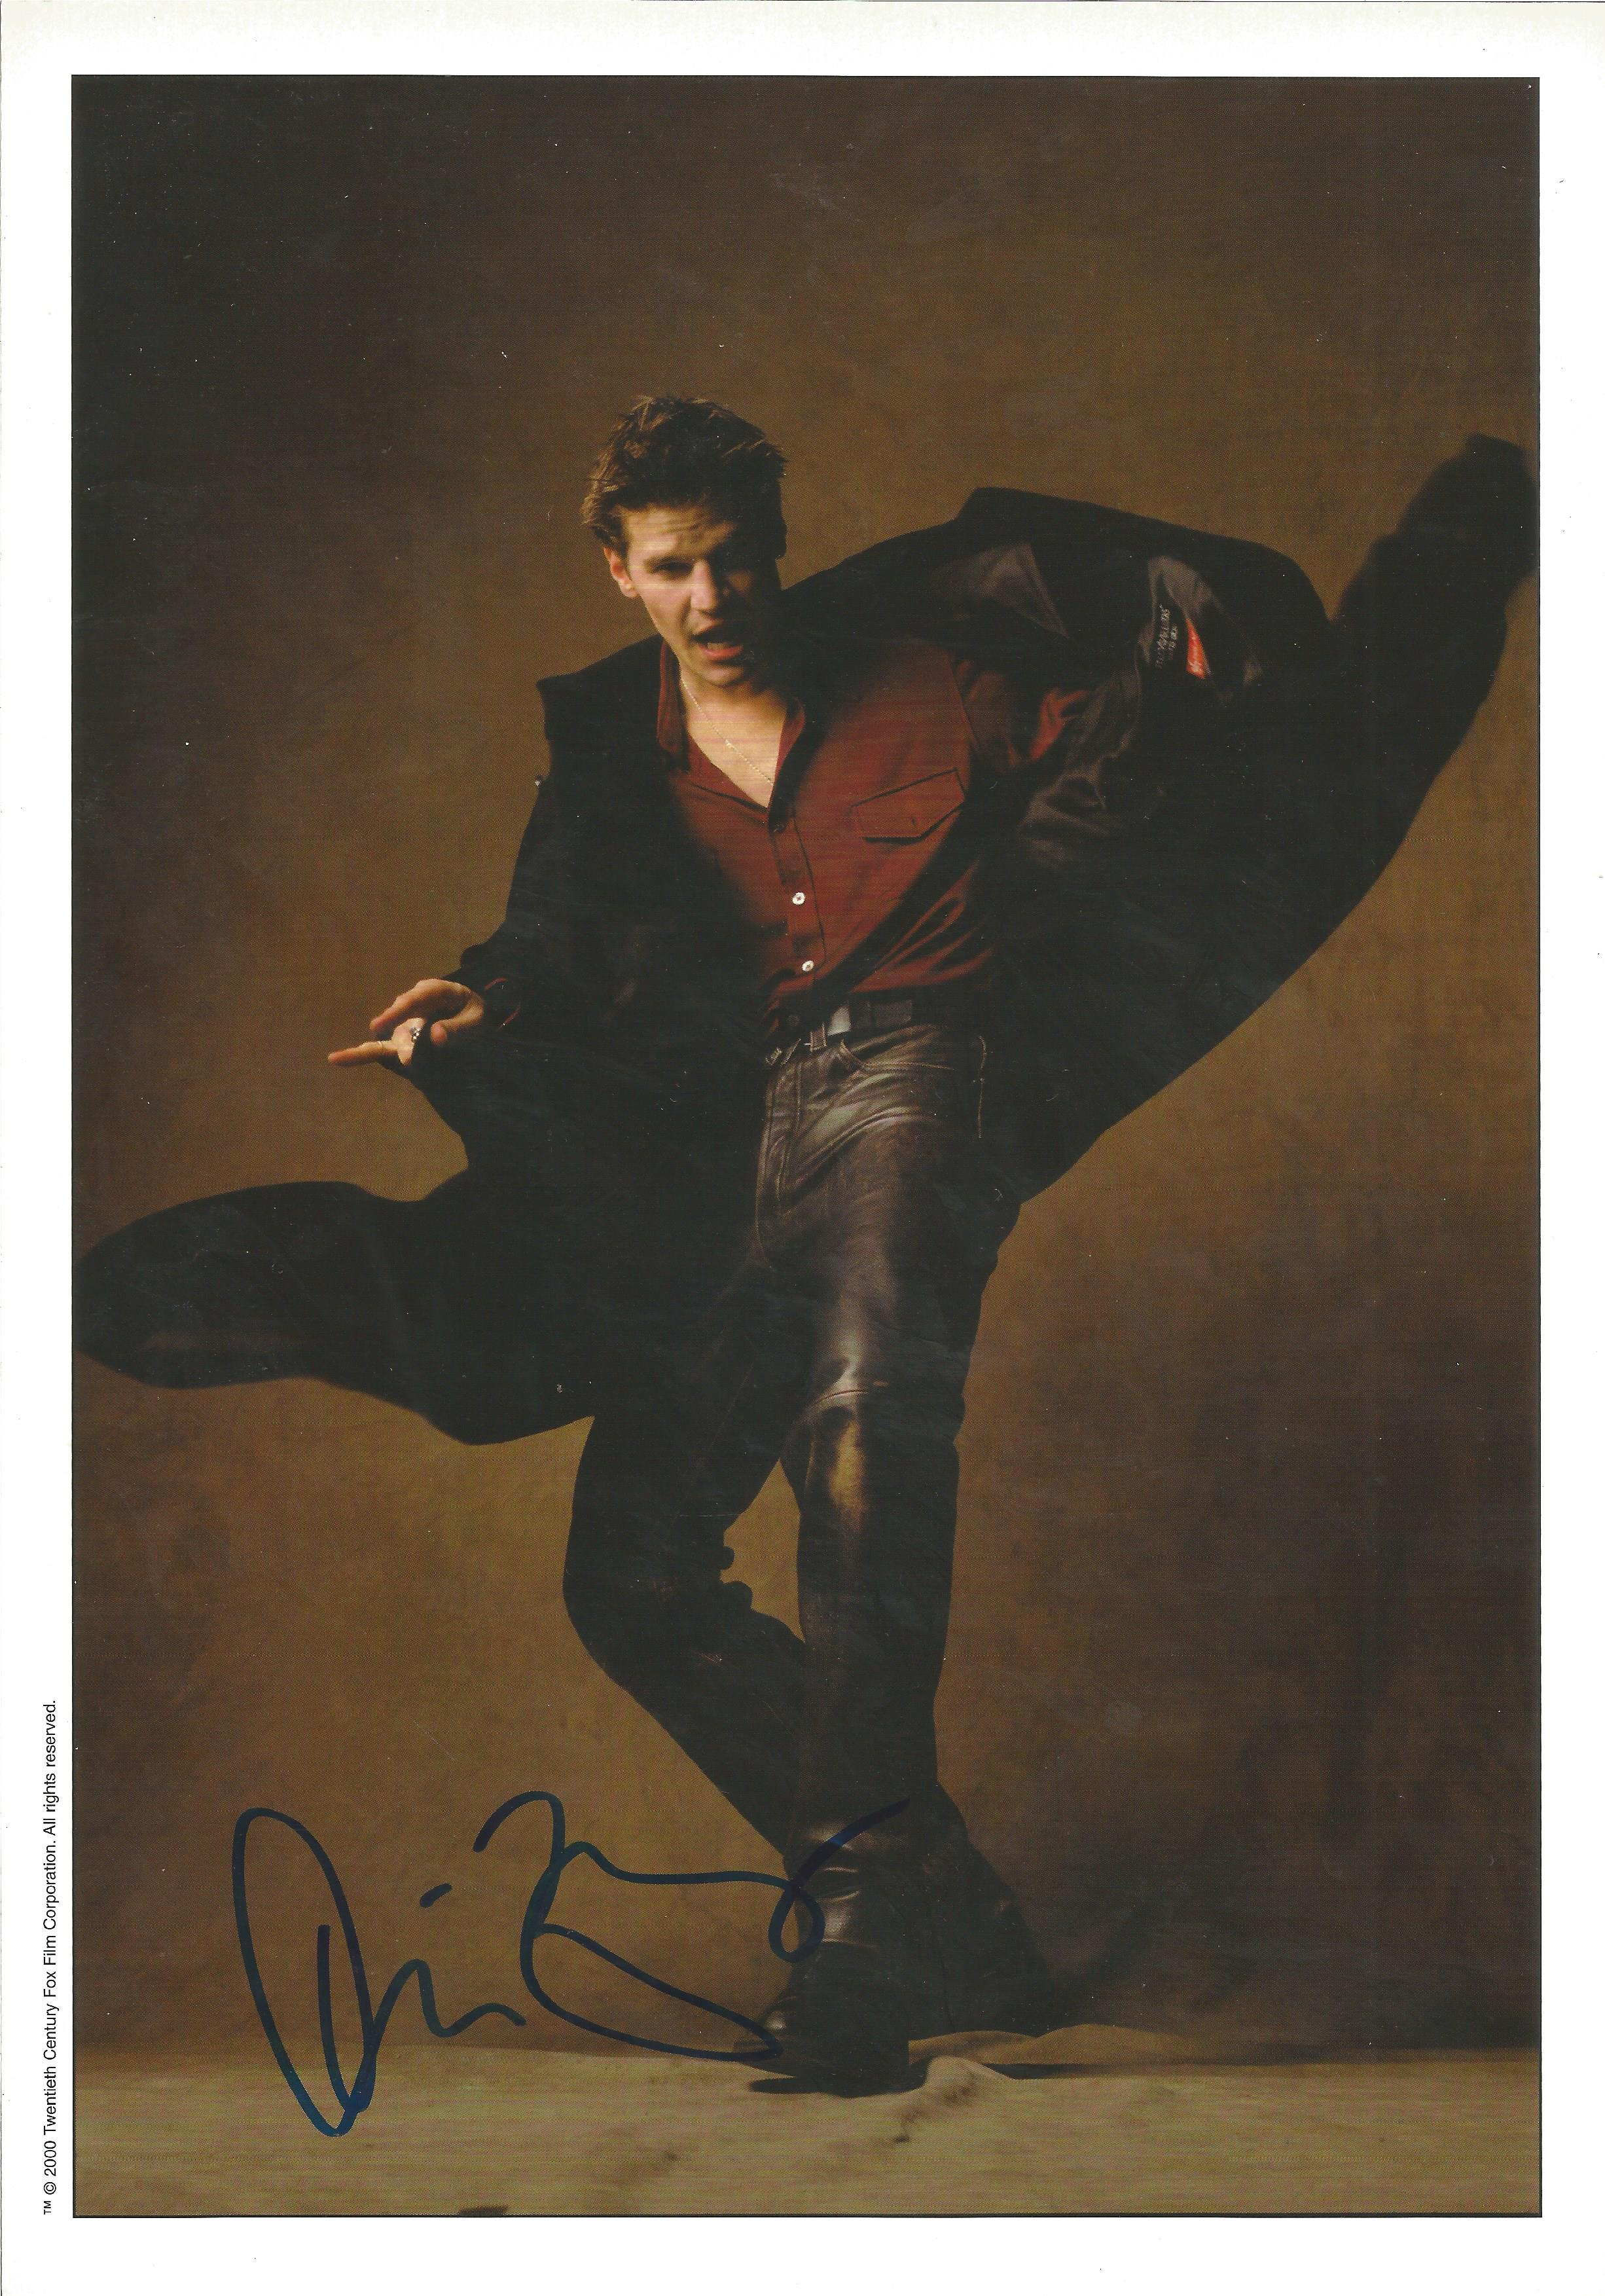 David Boreanaz Actor Angel Tv Show Autographed Signed Index Card Movies Cards & Papers